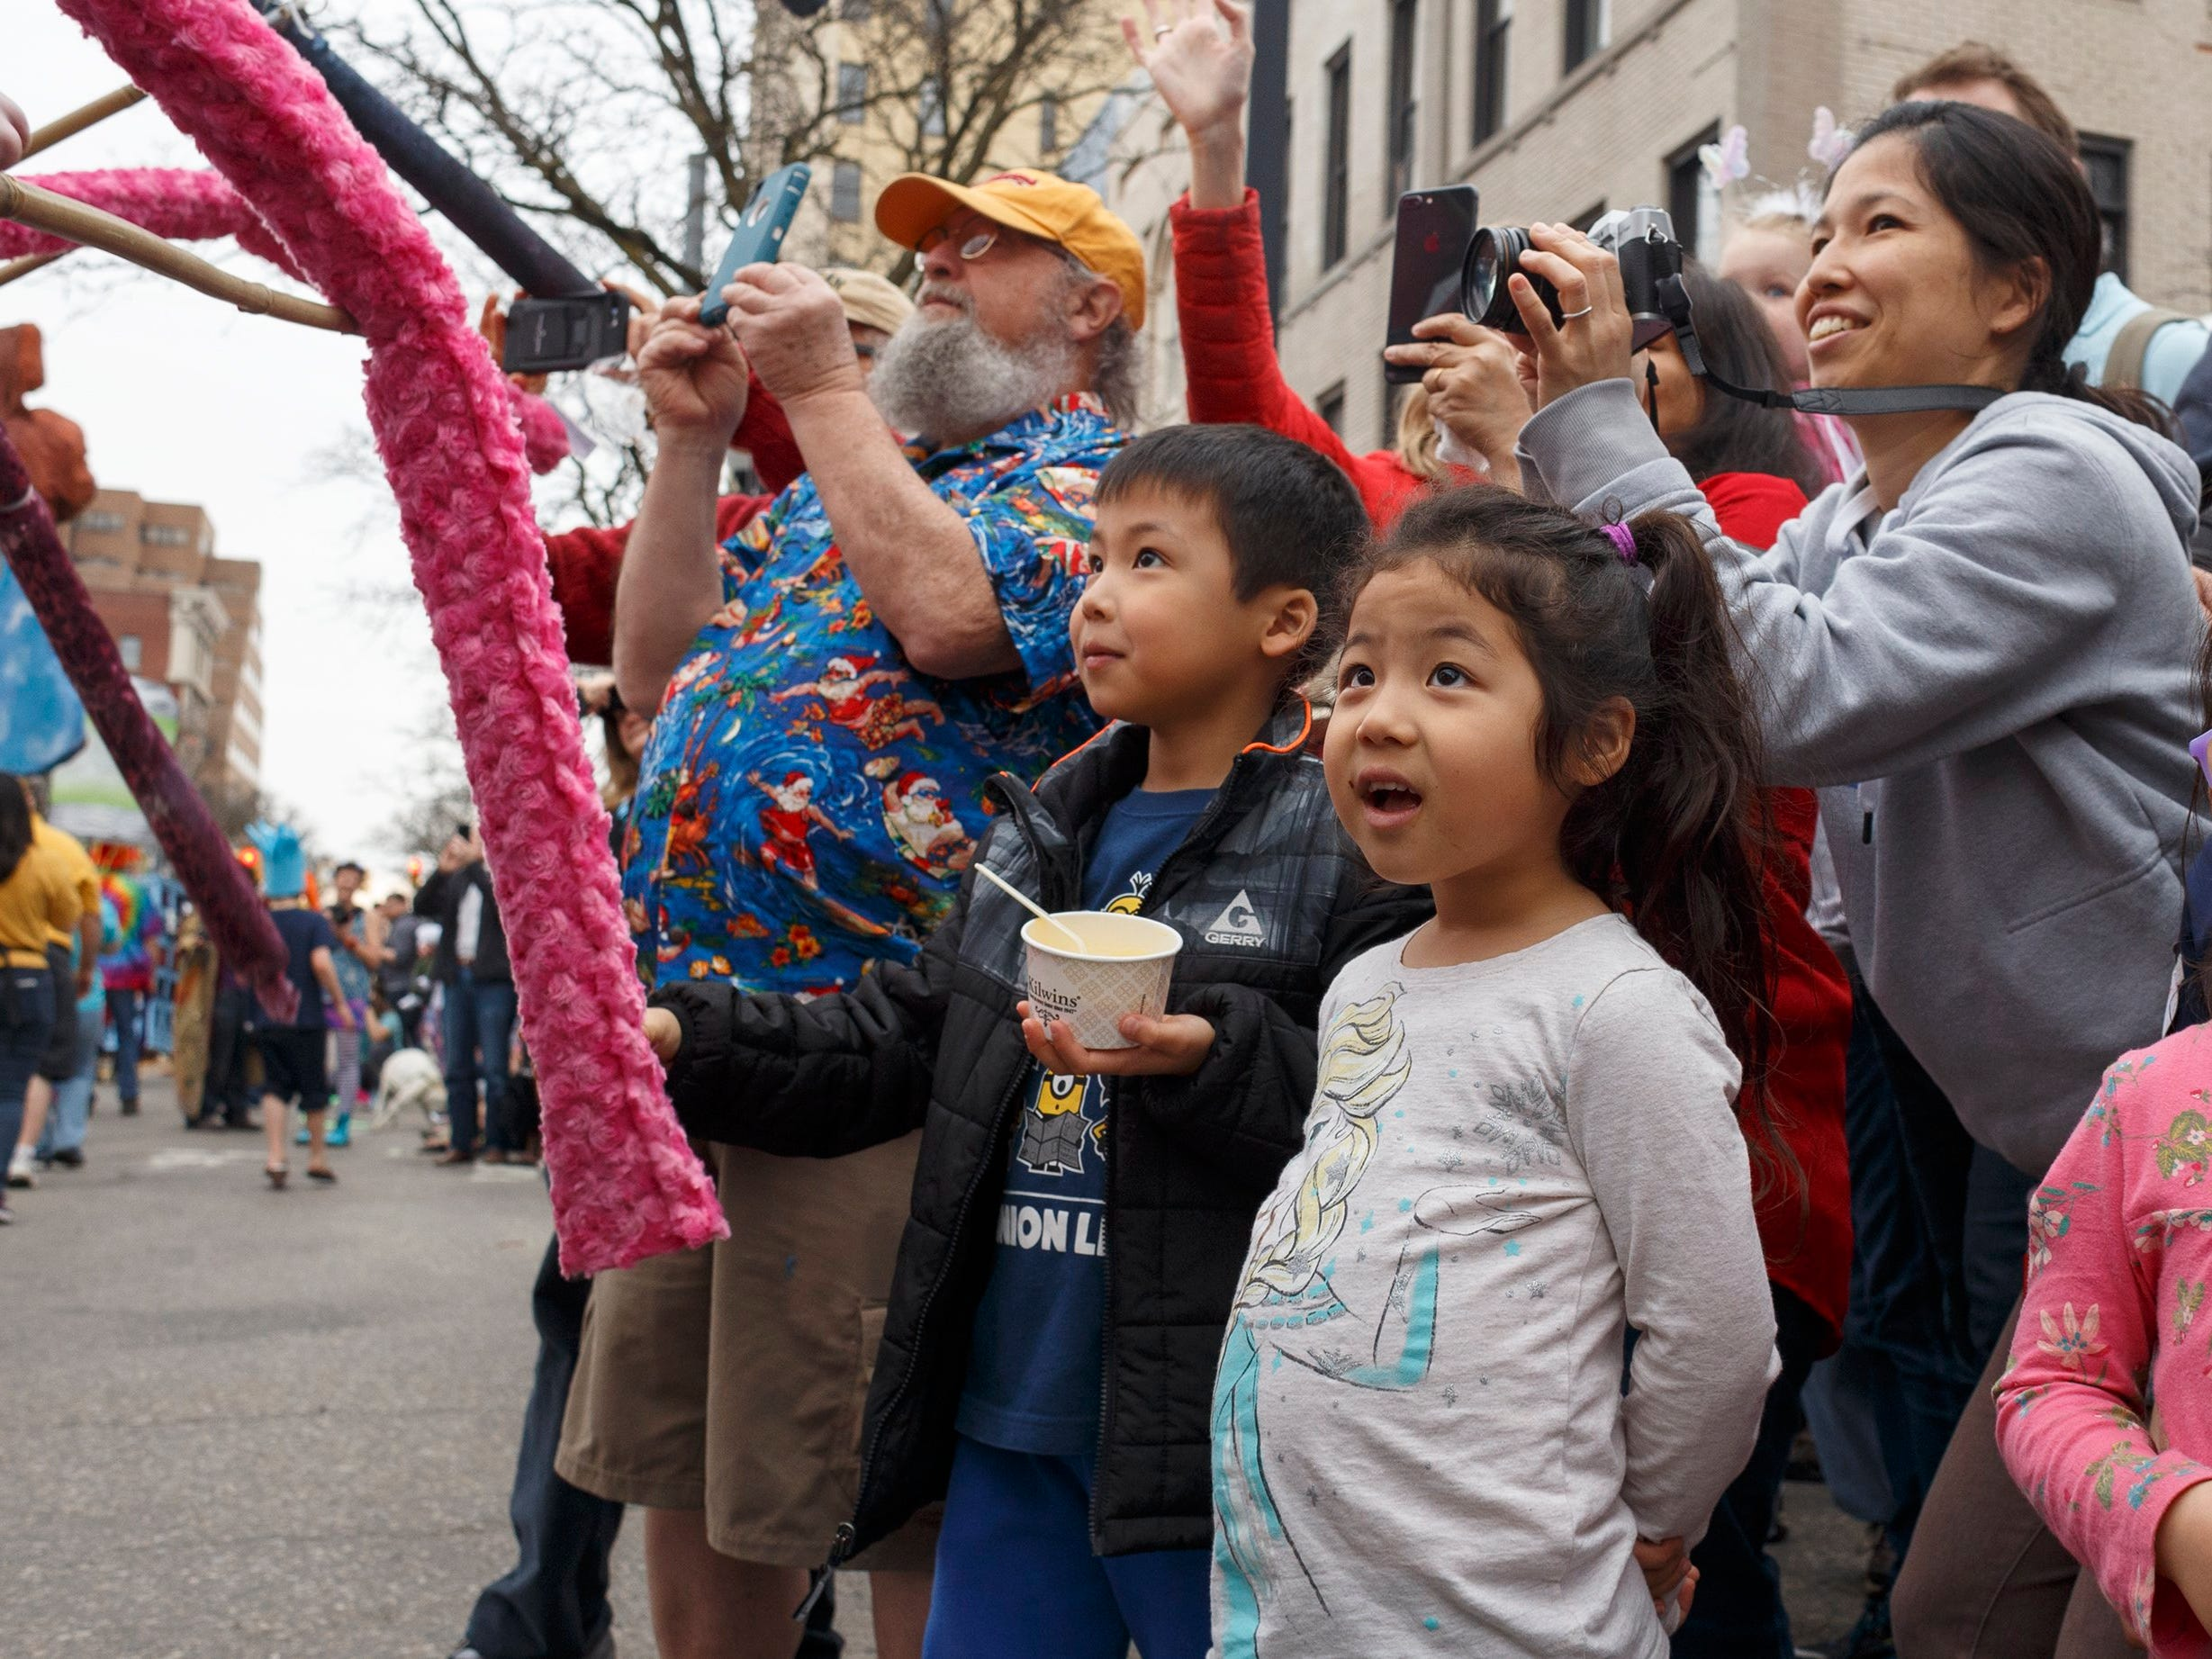 Siblings Hara, 7, left, and Iroha, 5, watch as puppets pass during the annual FestiFools parade on Sunday, April 7, 2019 on South Main Street in downtown Ann Arbor.